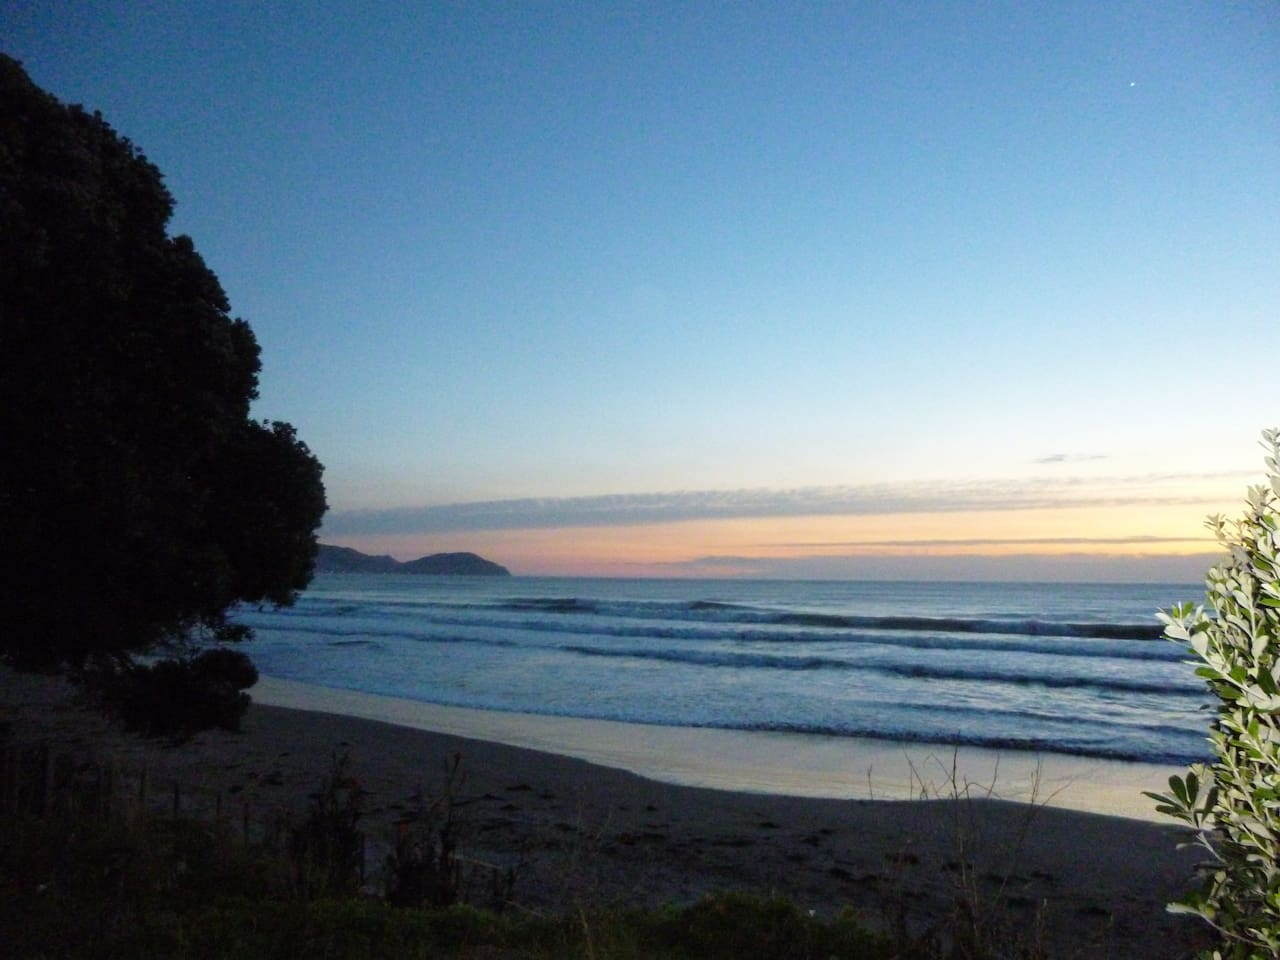 Less than a 2 minute walk to see the sunrise at Wainui.  It is one of the major surf beaches in  NZ.